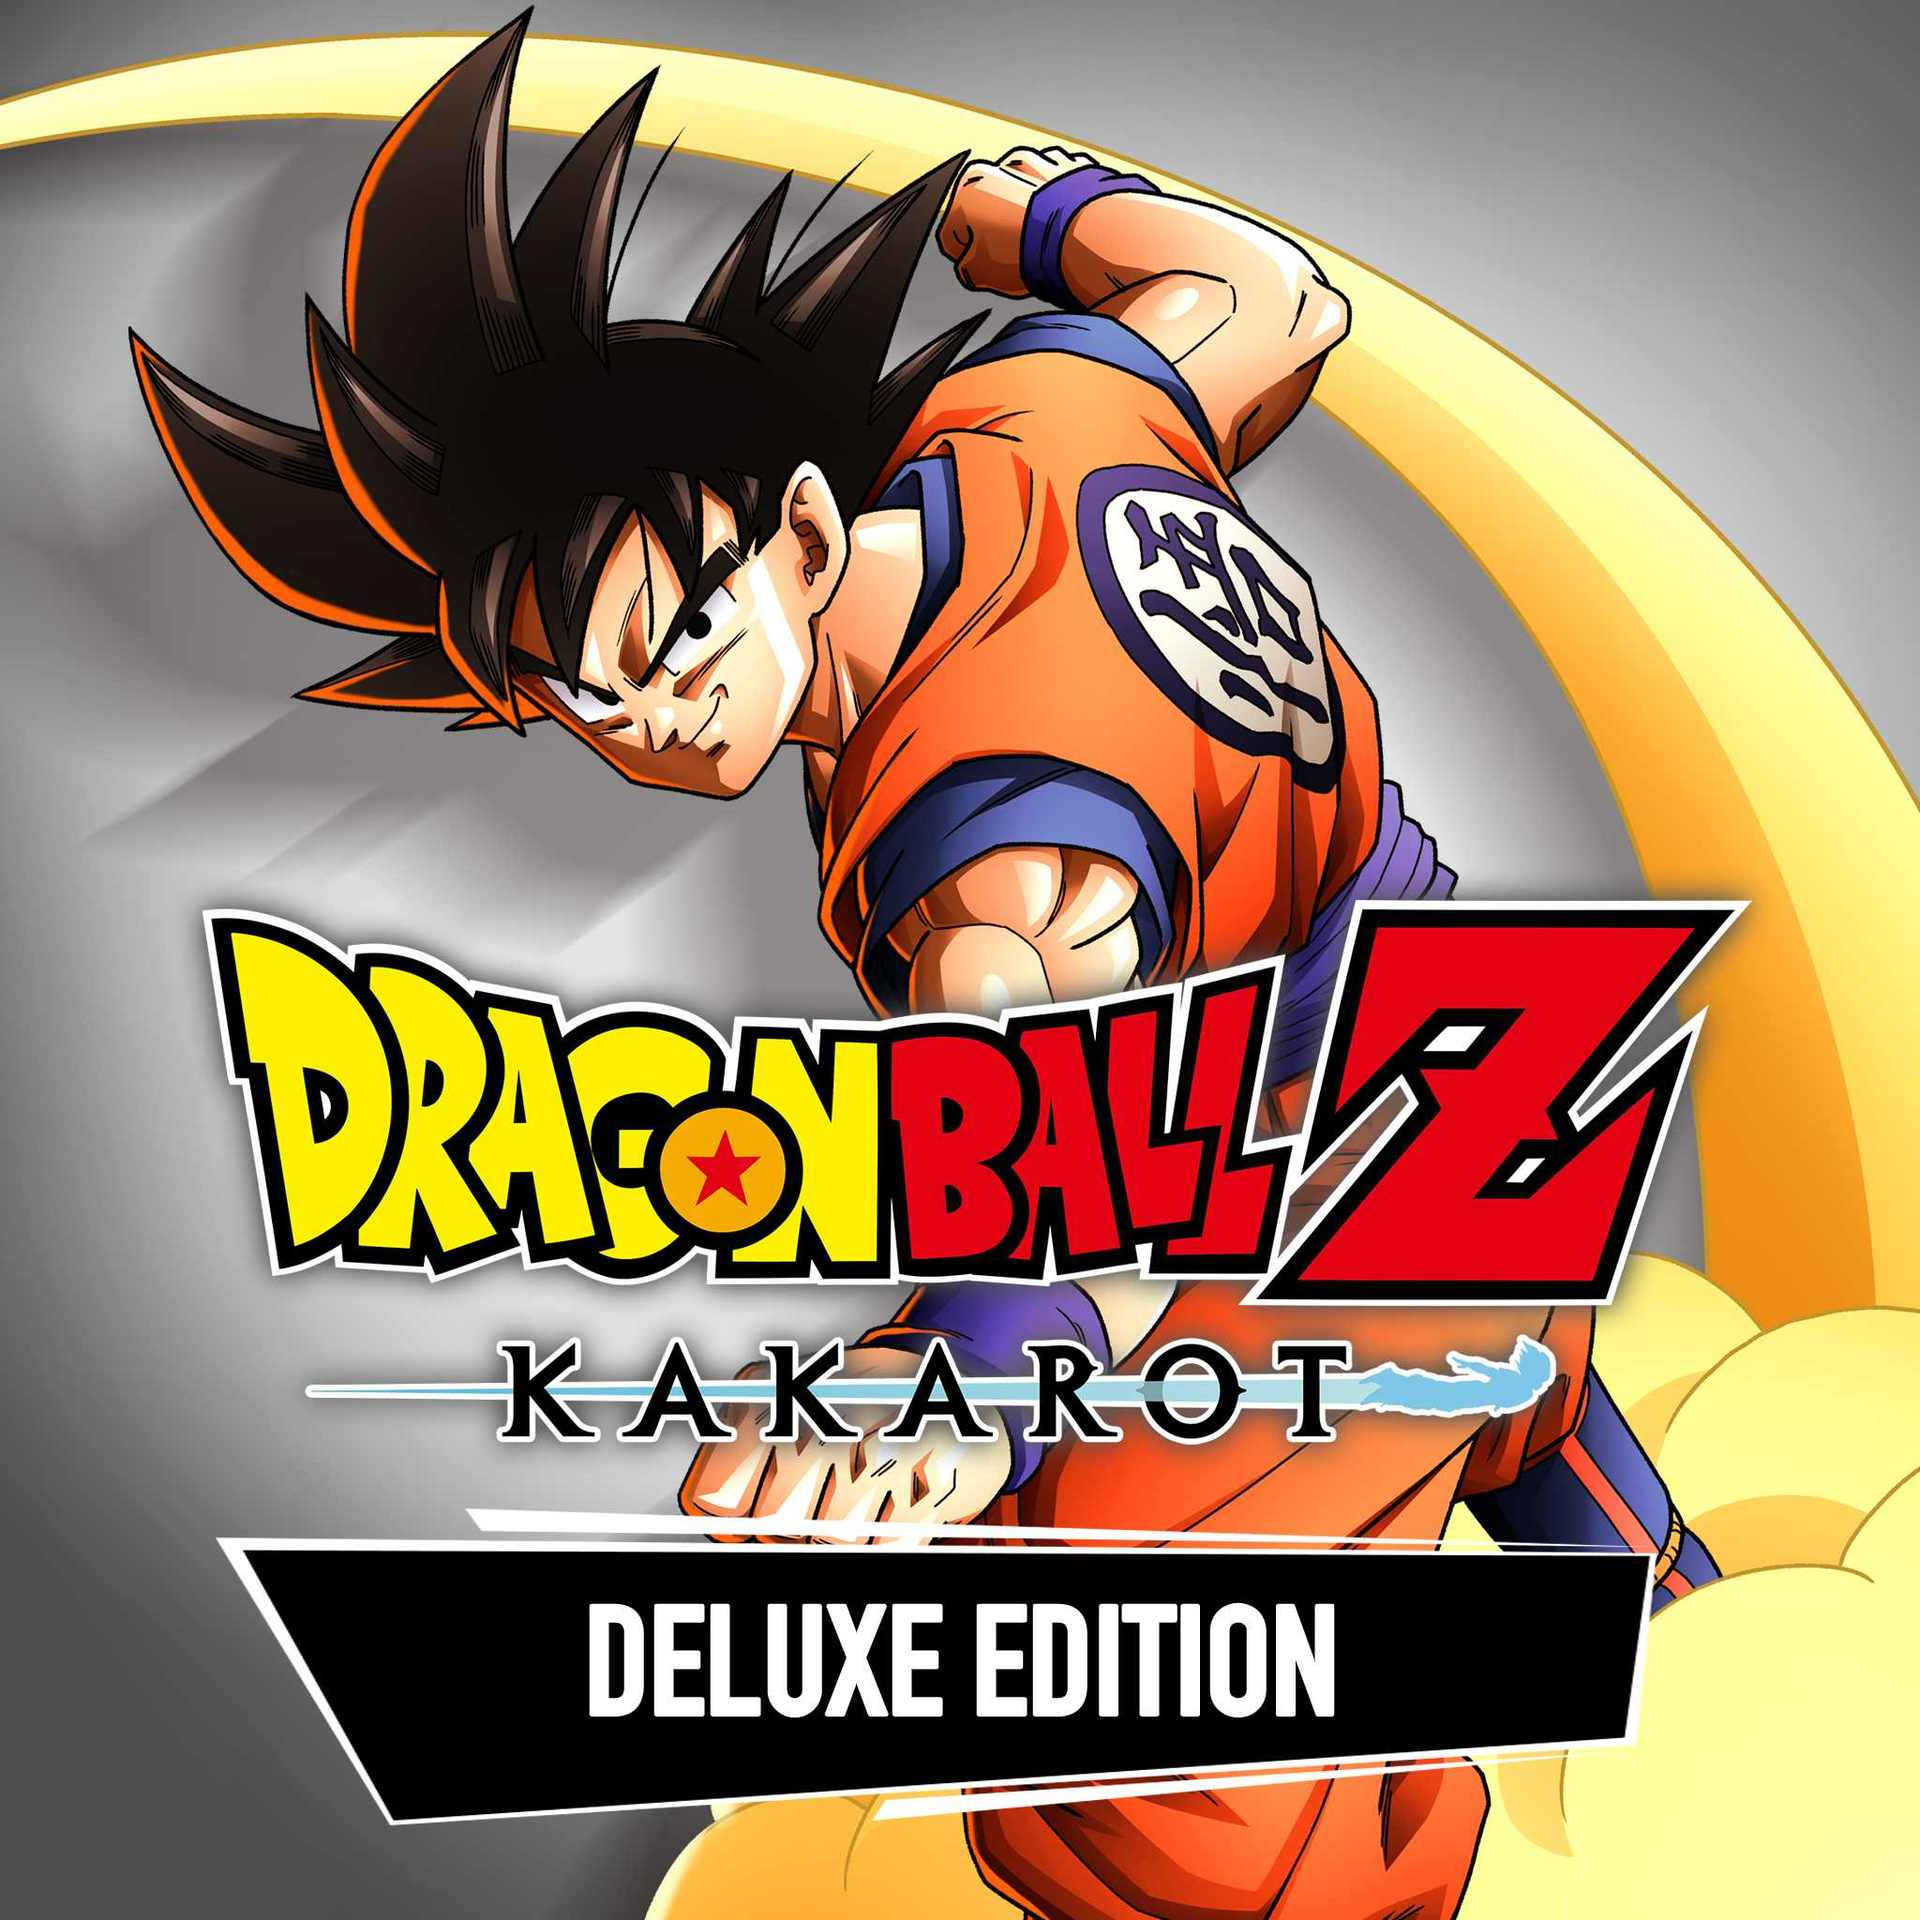 DRAGON BALL Z: KAKAROT - Deluxe Edition (PC) Klíč Steam (PC)